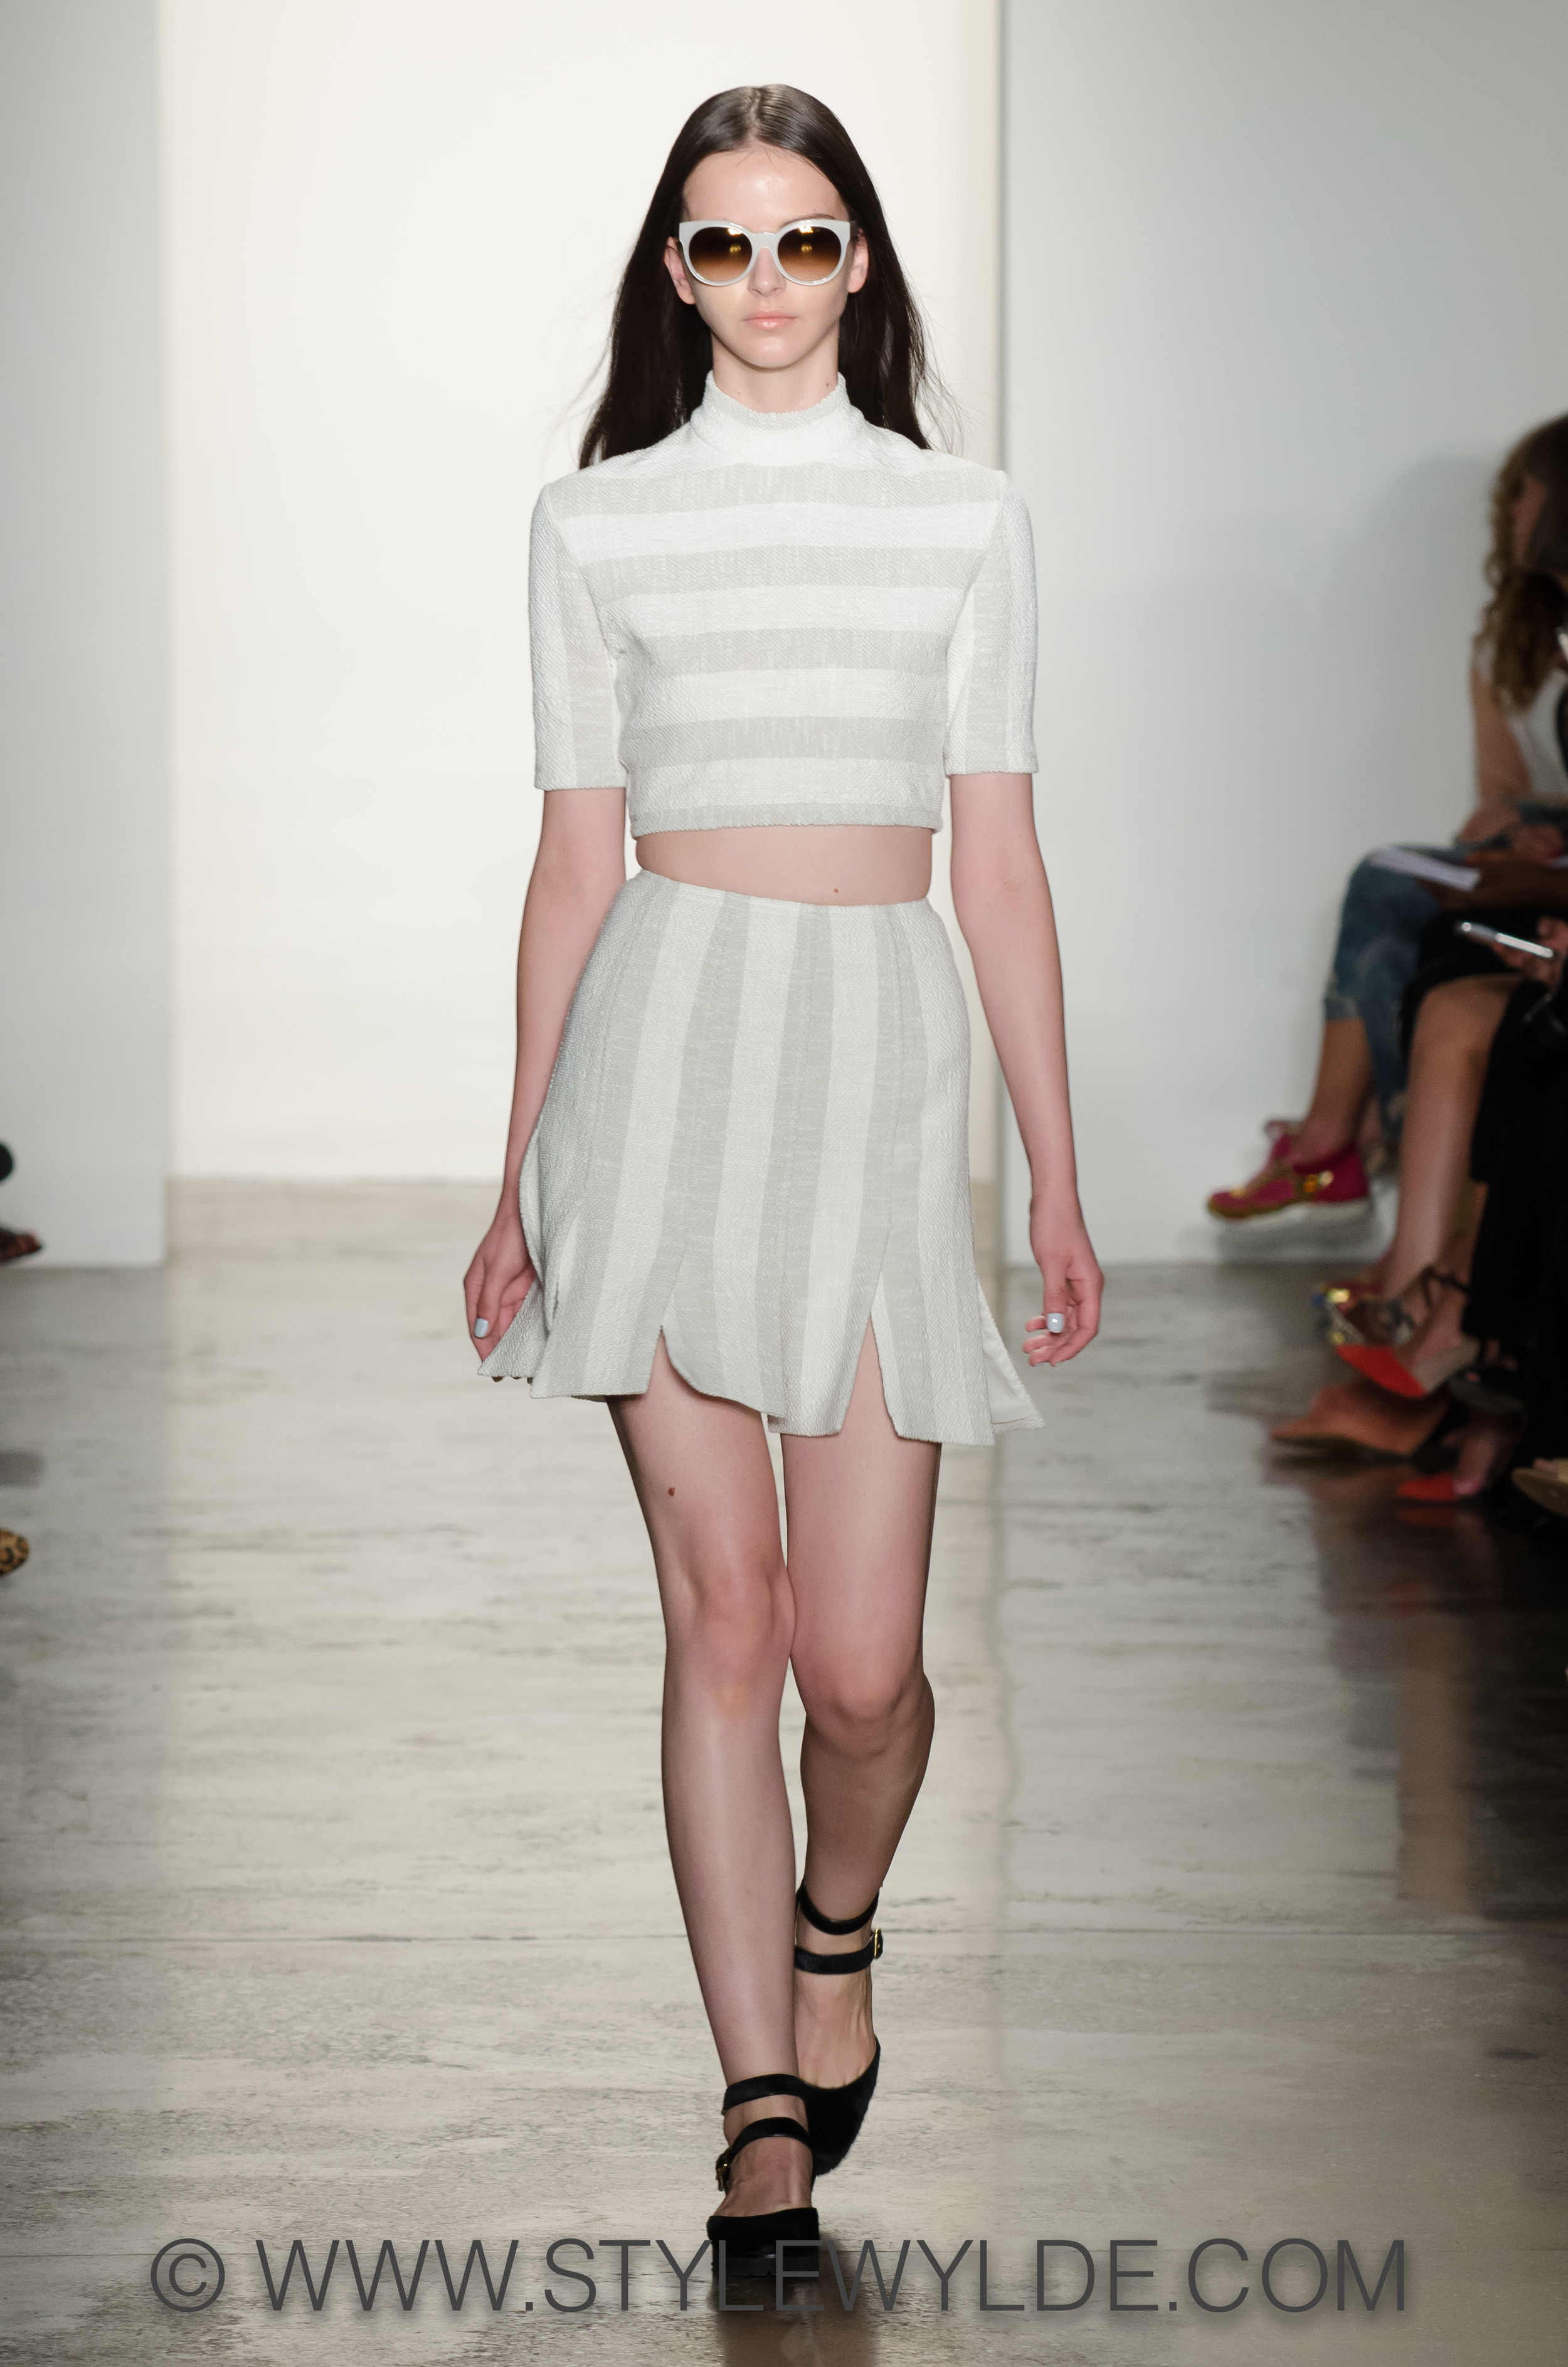 StyleWylde_Timo_SS15_FOH (14 of 38).jpg